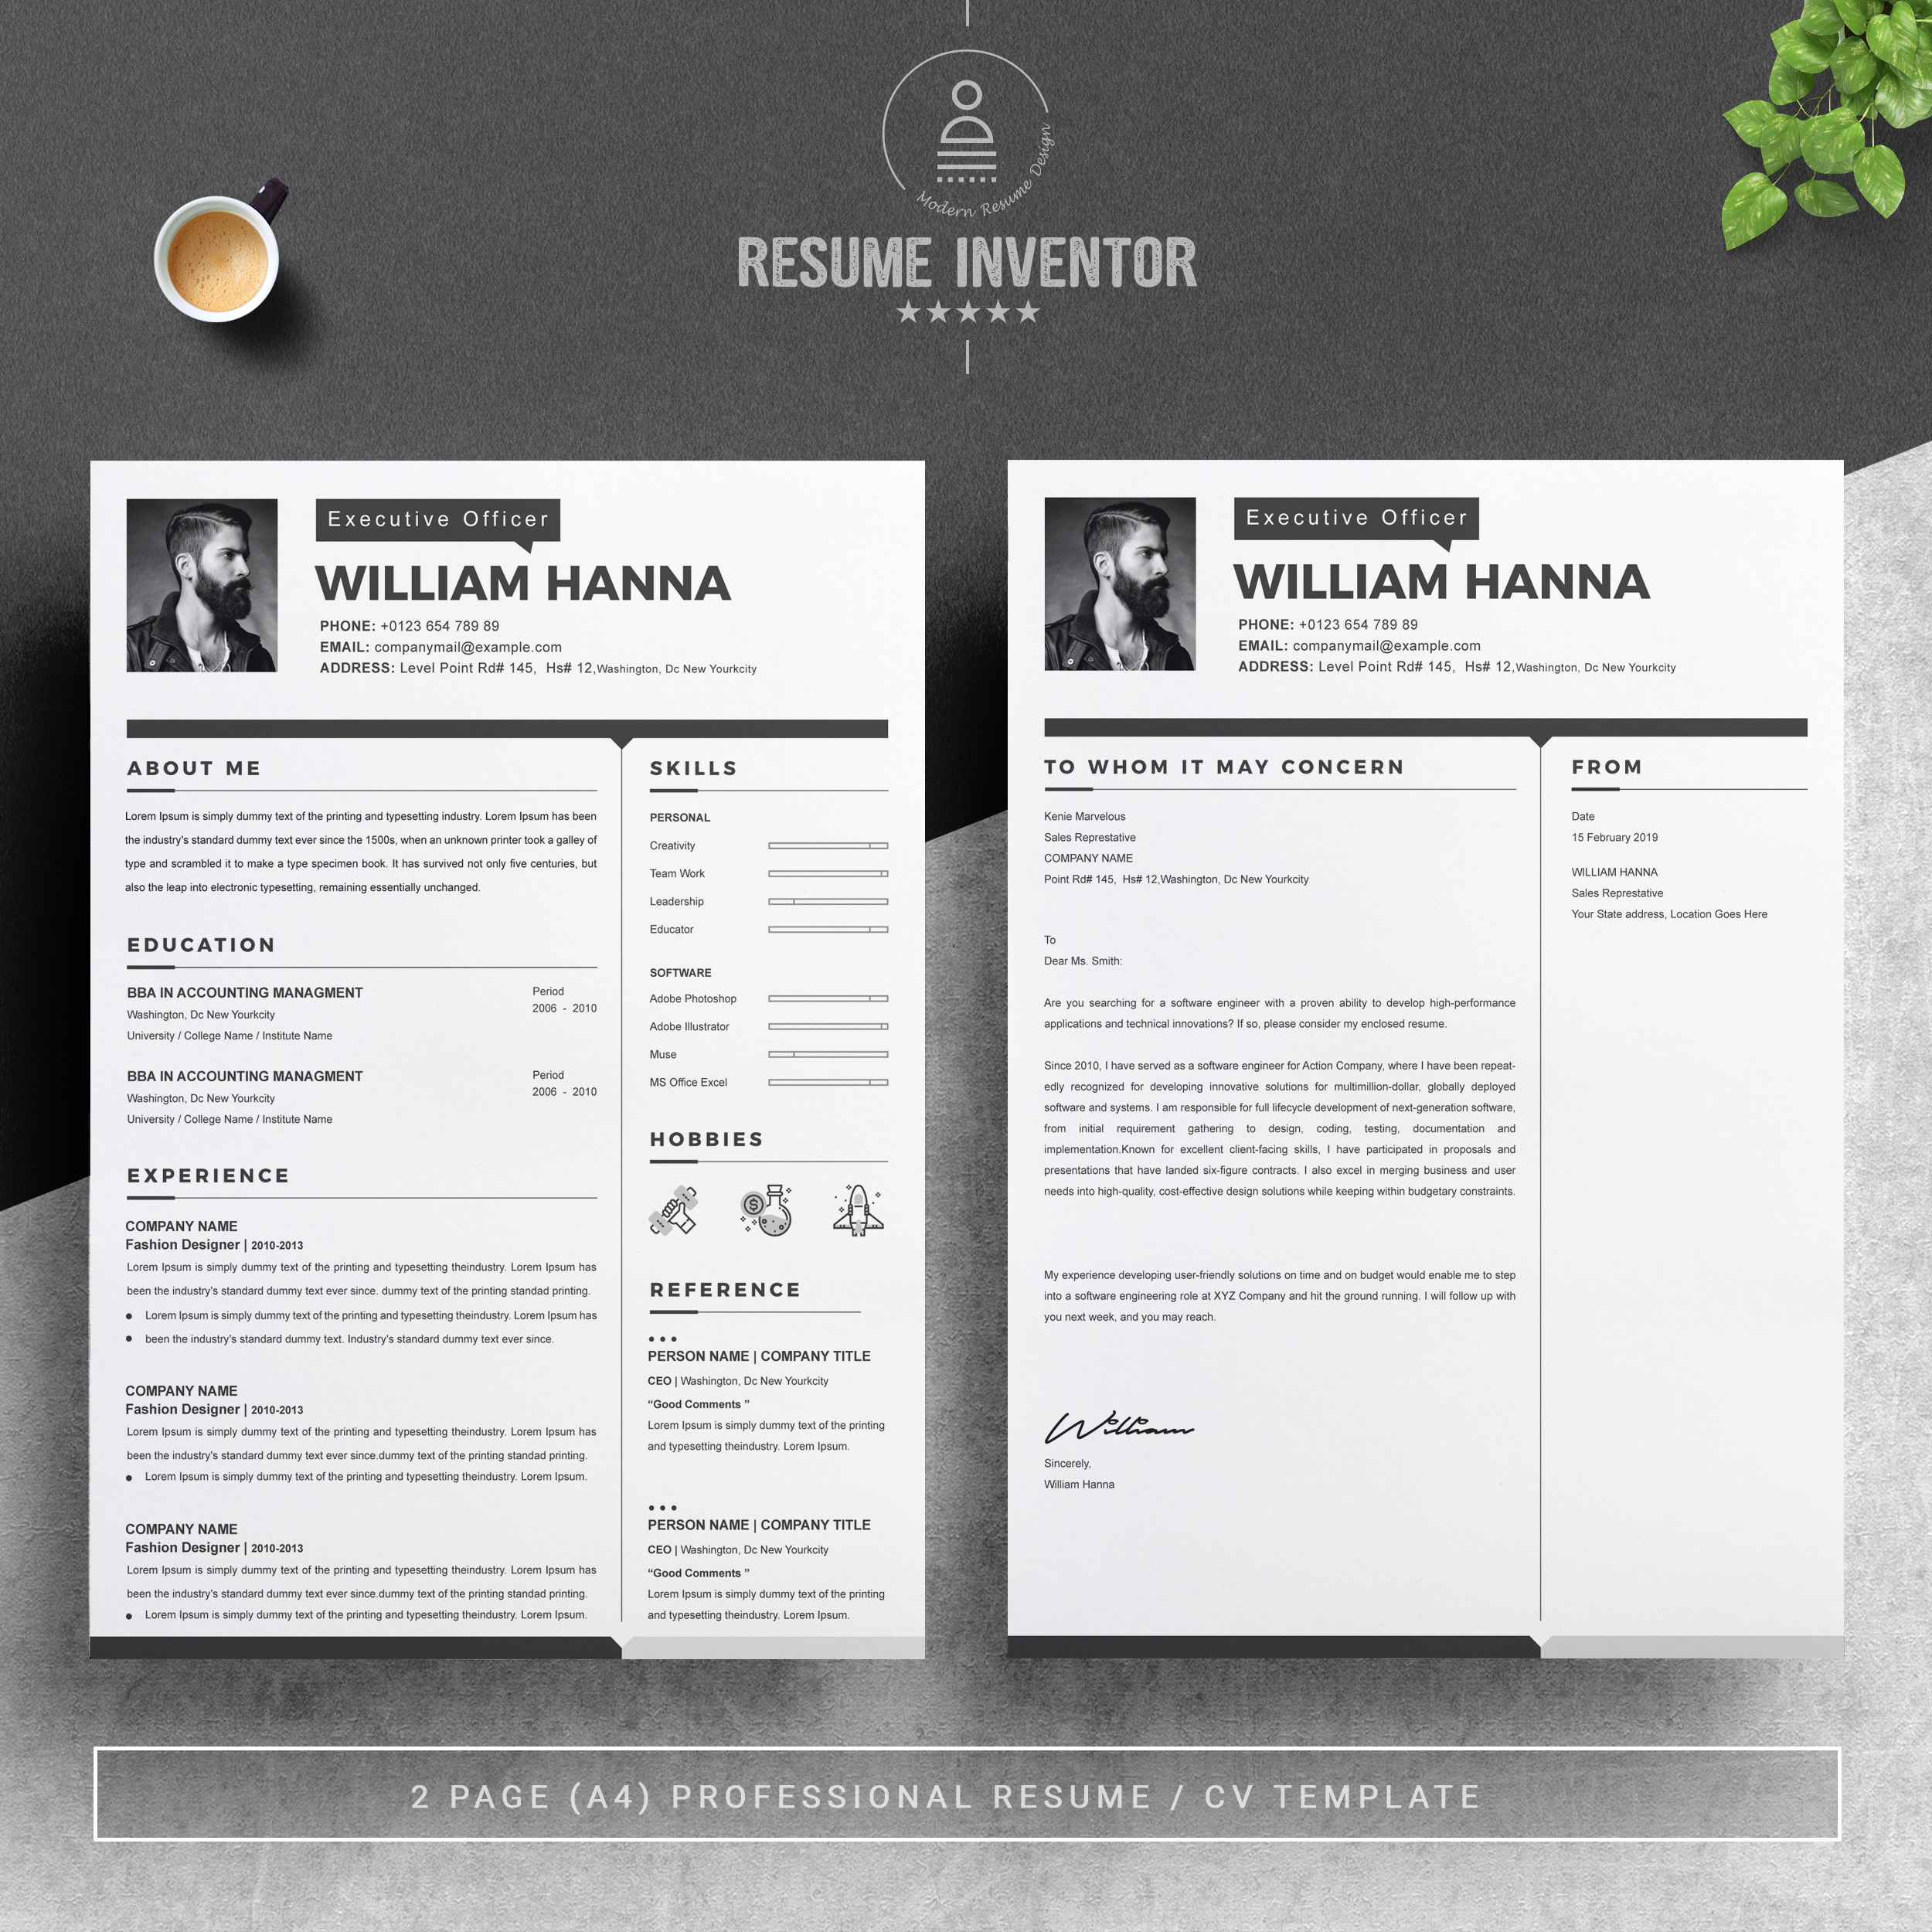 resume template with cover letter crella two free design healthcare skills good technical Resume Two Page Resume Template